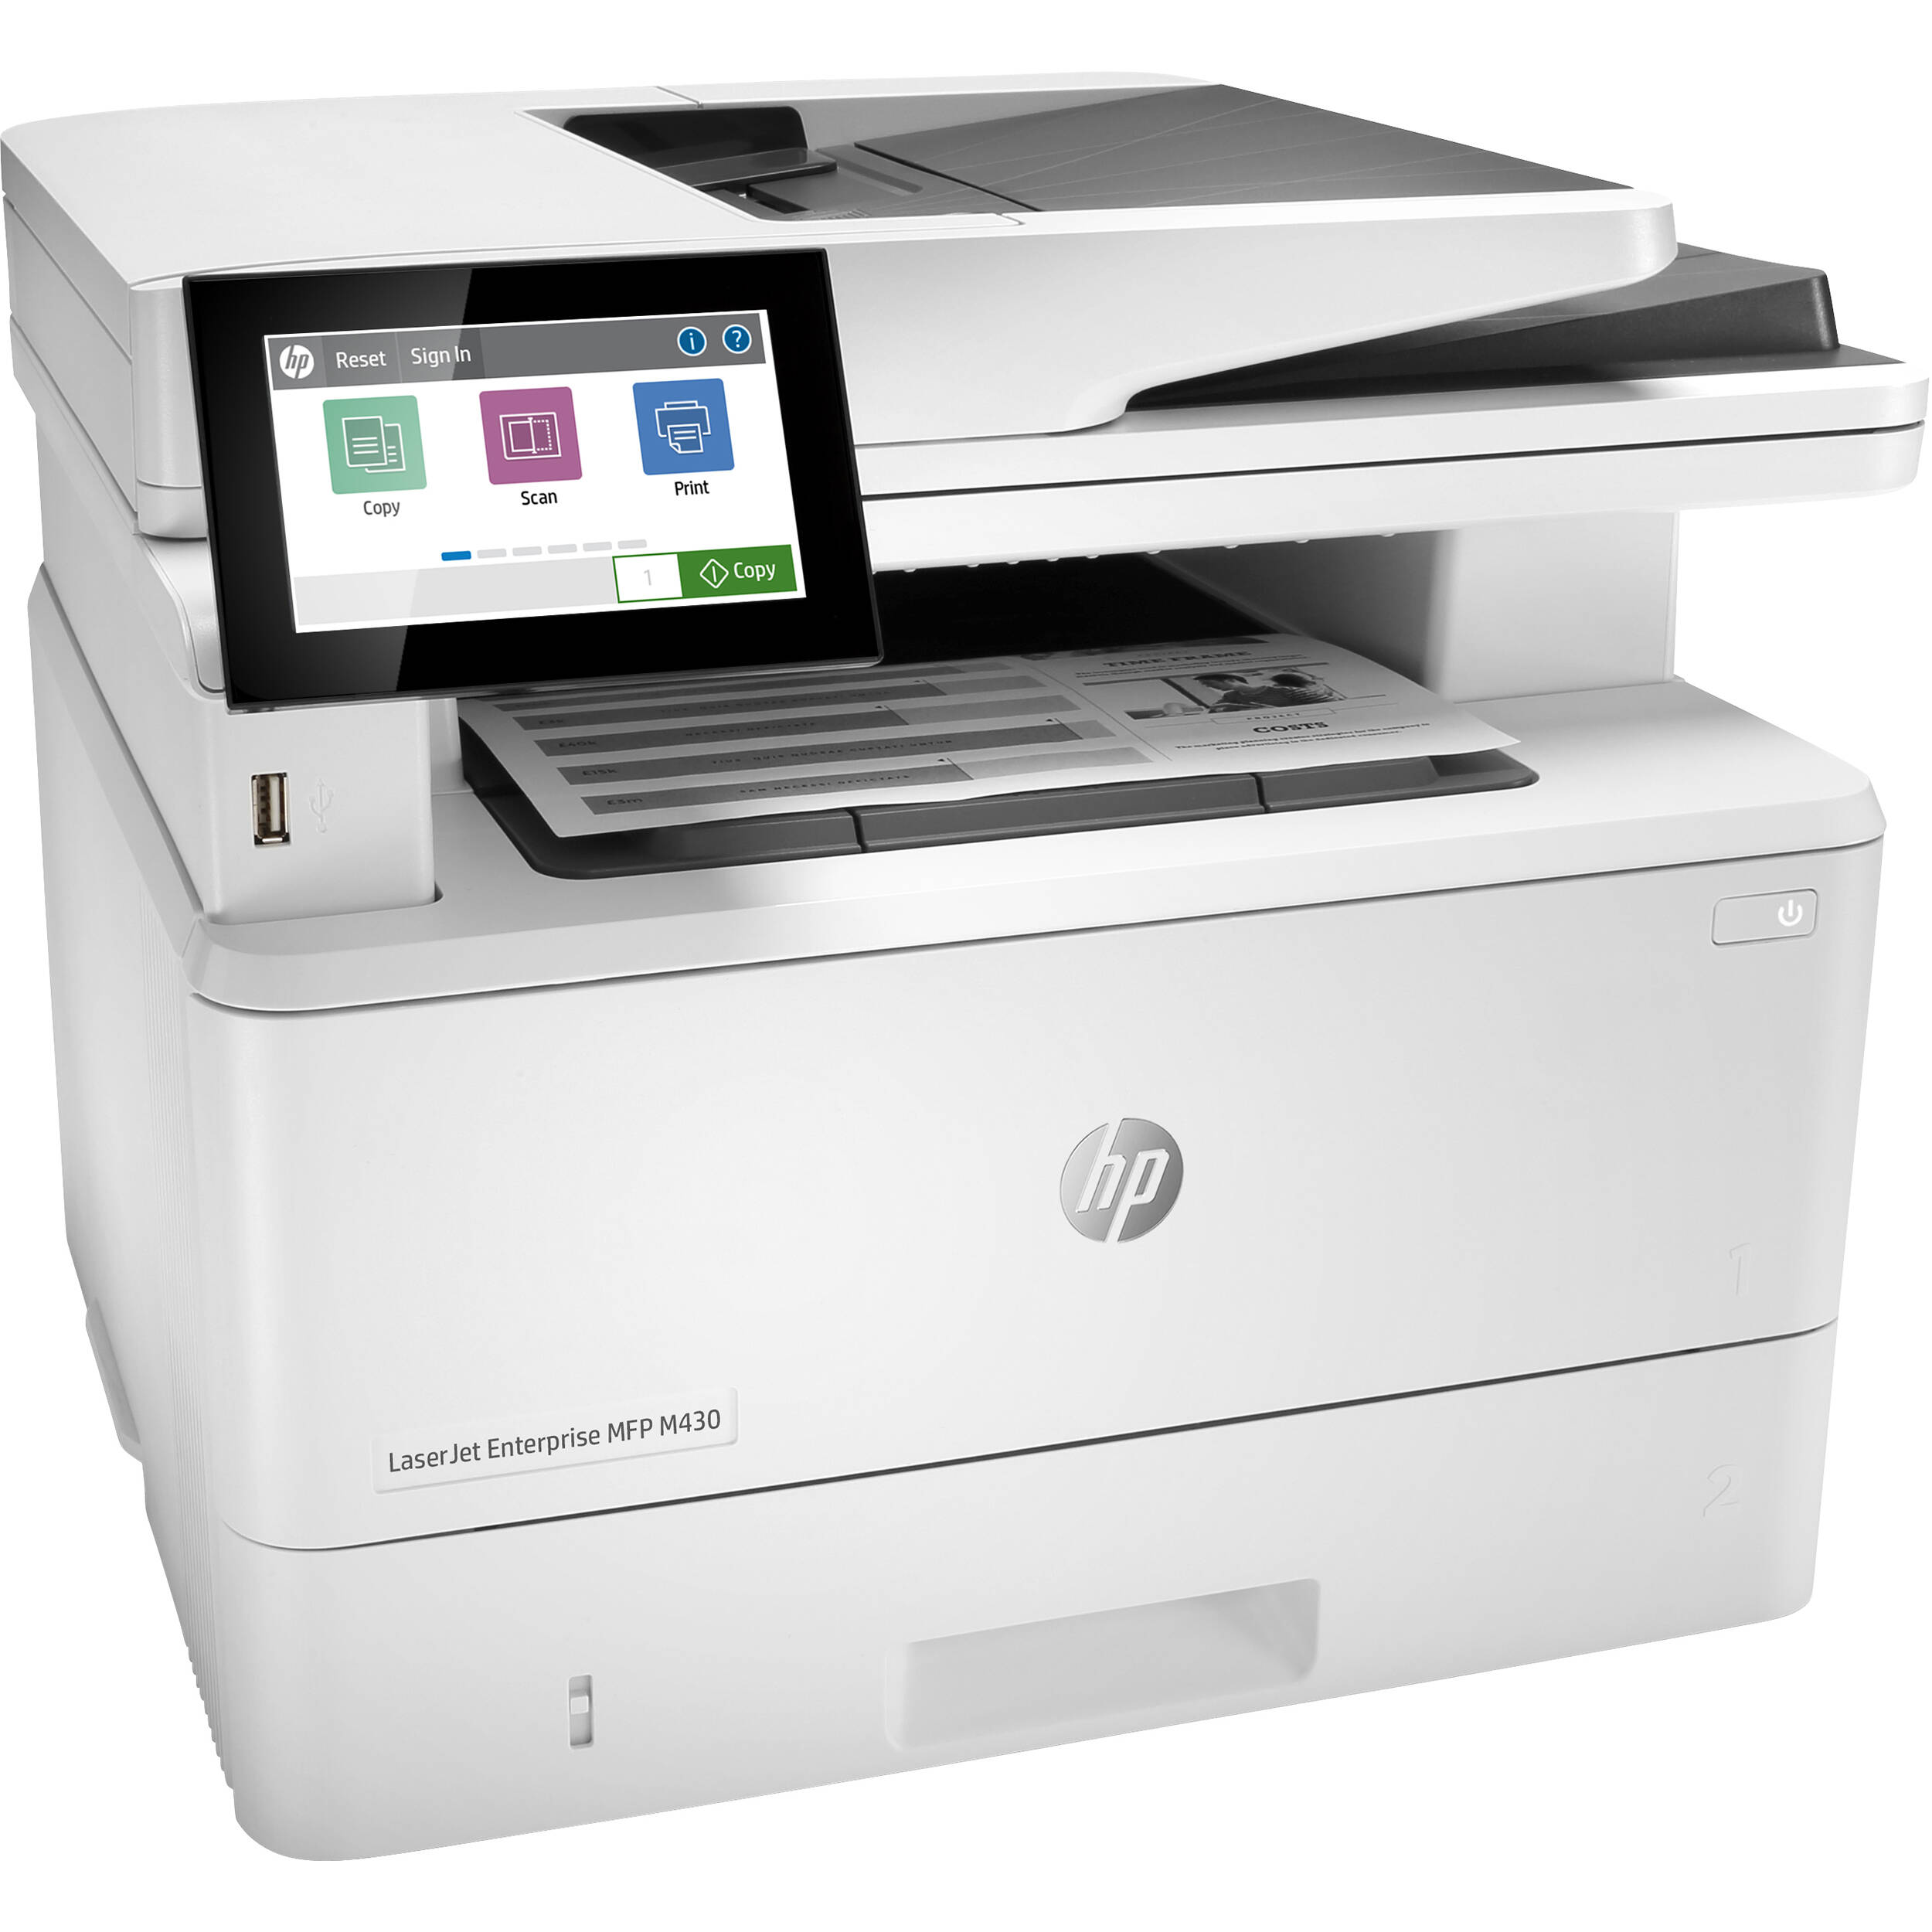 HP LaserJet Enterprise MFP M430f Mono Laser Printer, Refurbished (3PZ55A)